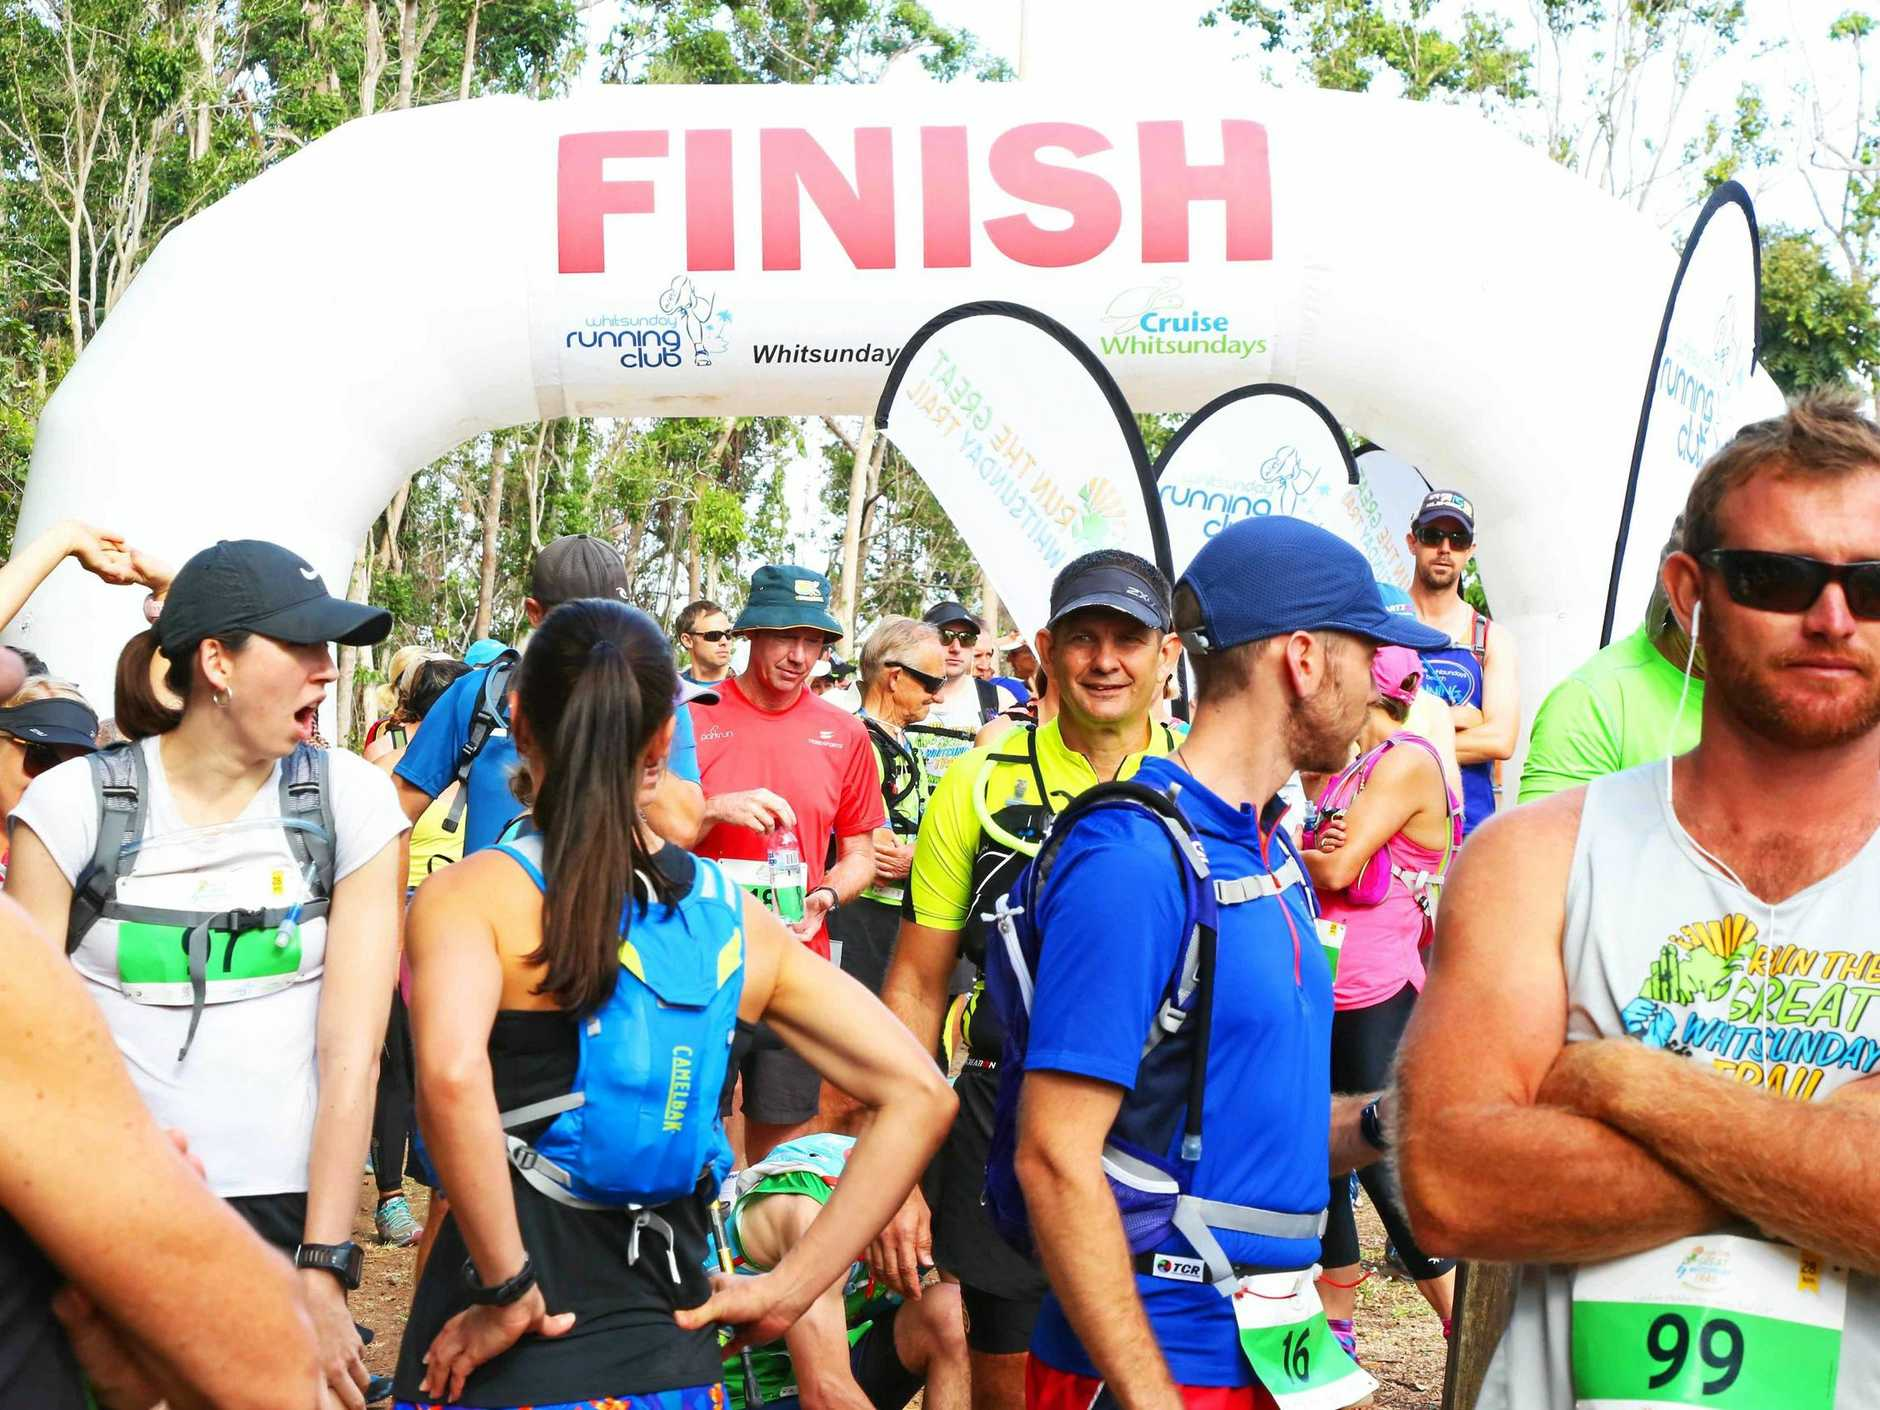 Race briefing at the start of the Run the Whitsunday Trail.